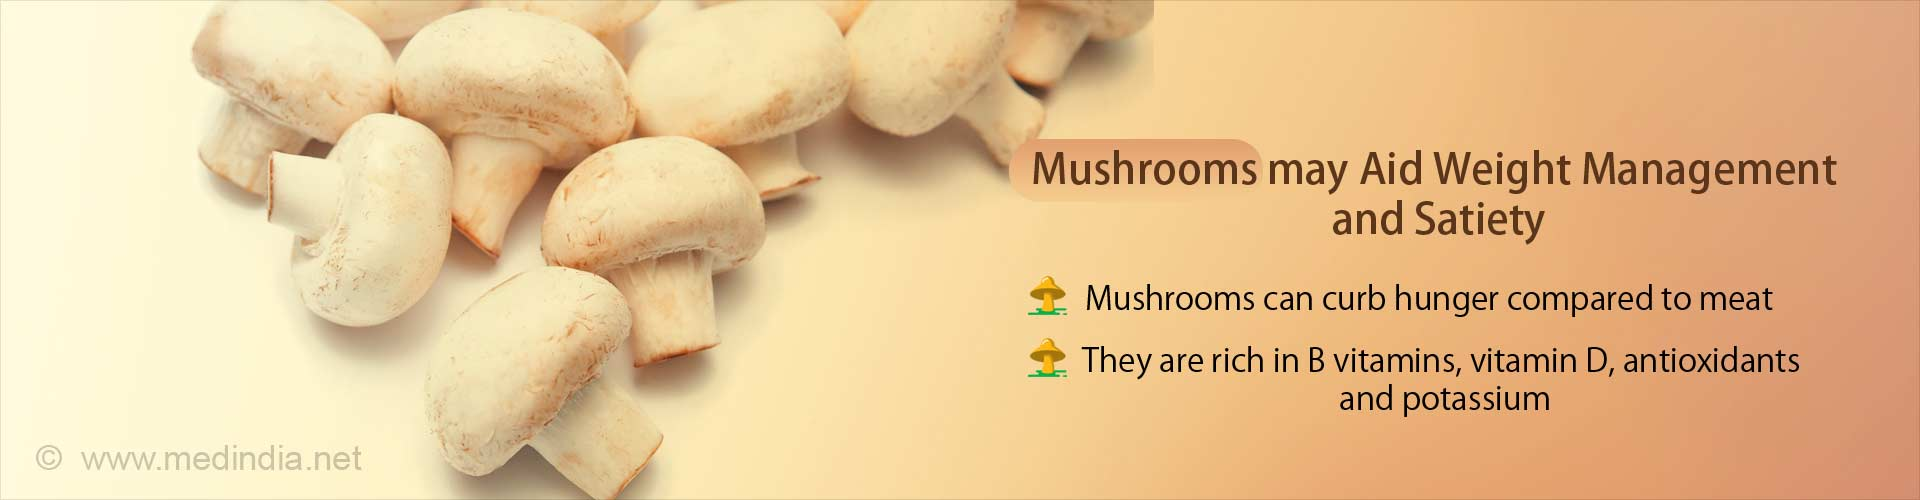 Mushrooms can be as Satiating as Meat